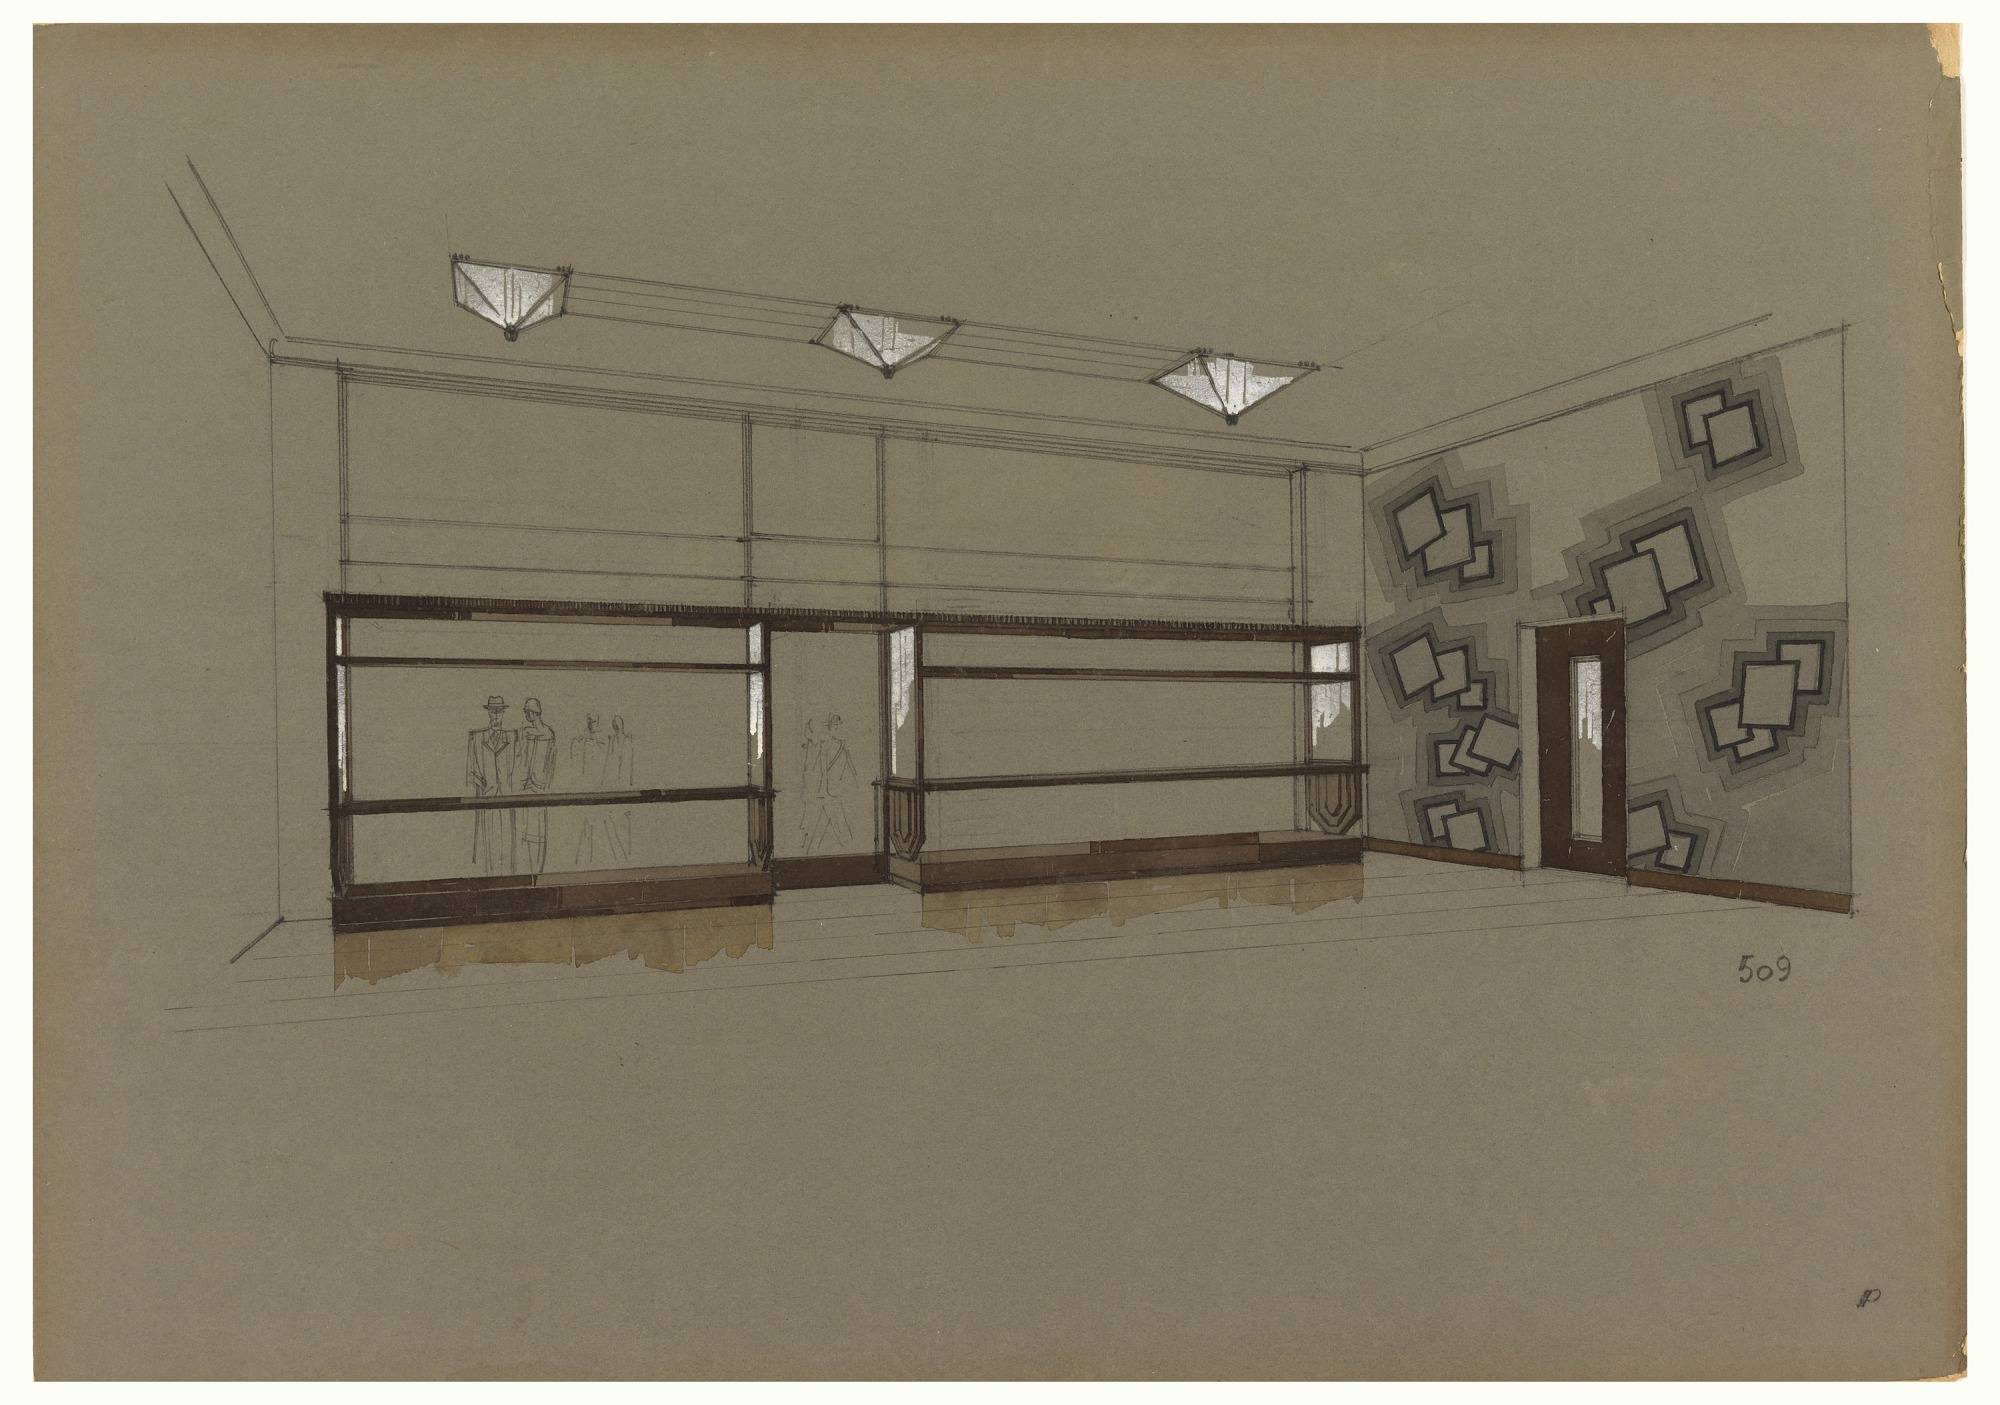 Design for Store Interior in the Art Deco Style with Square-Patterned Wall Covering